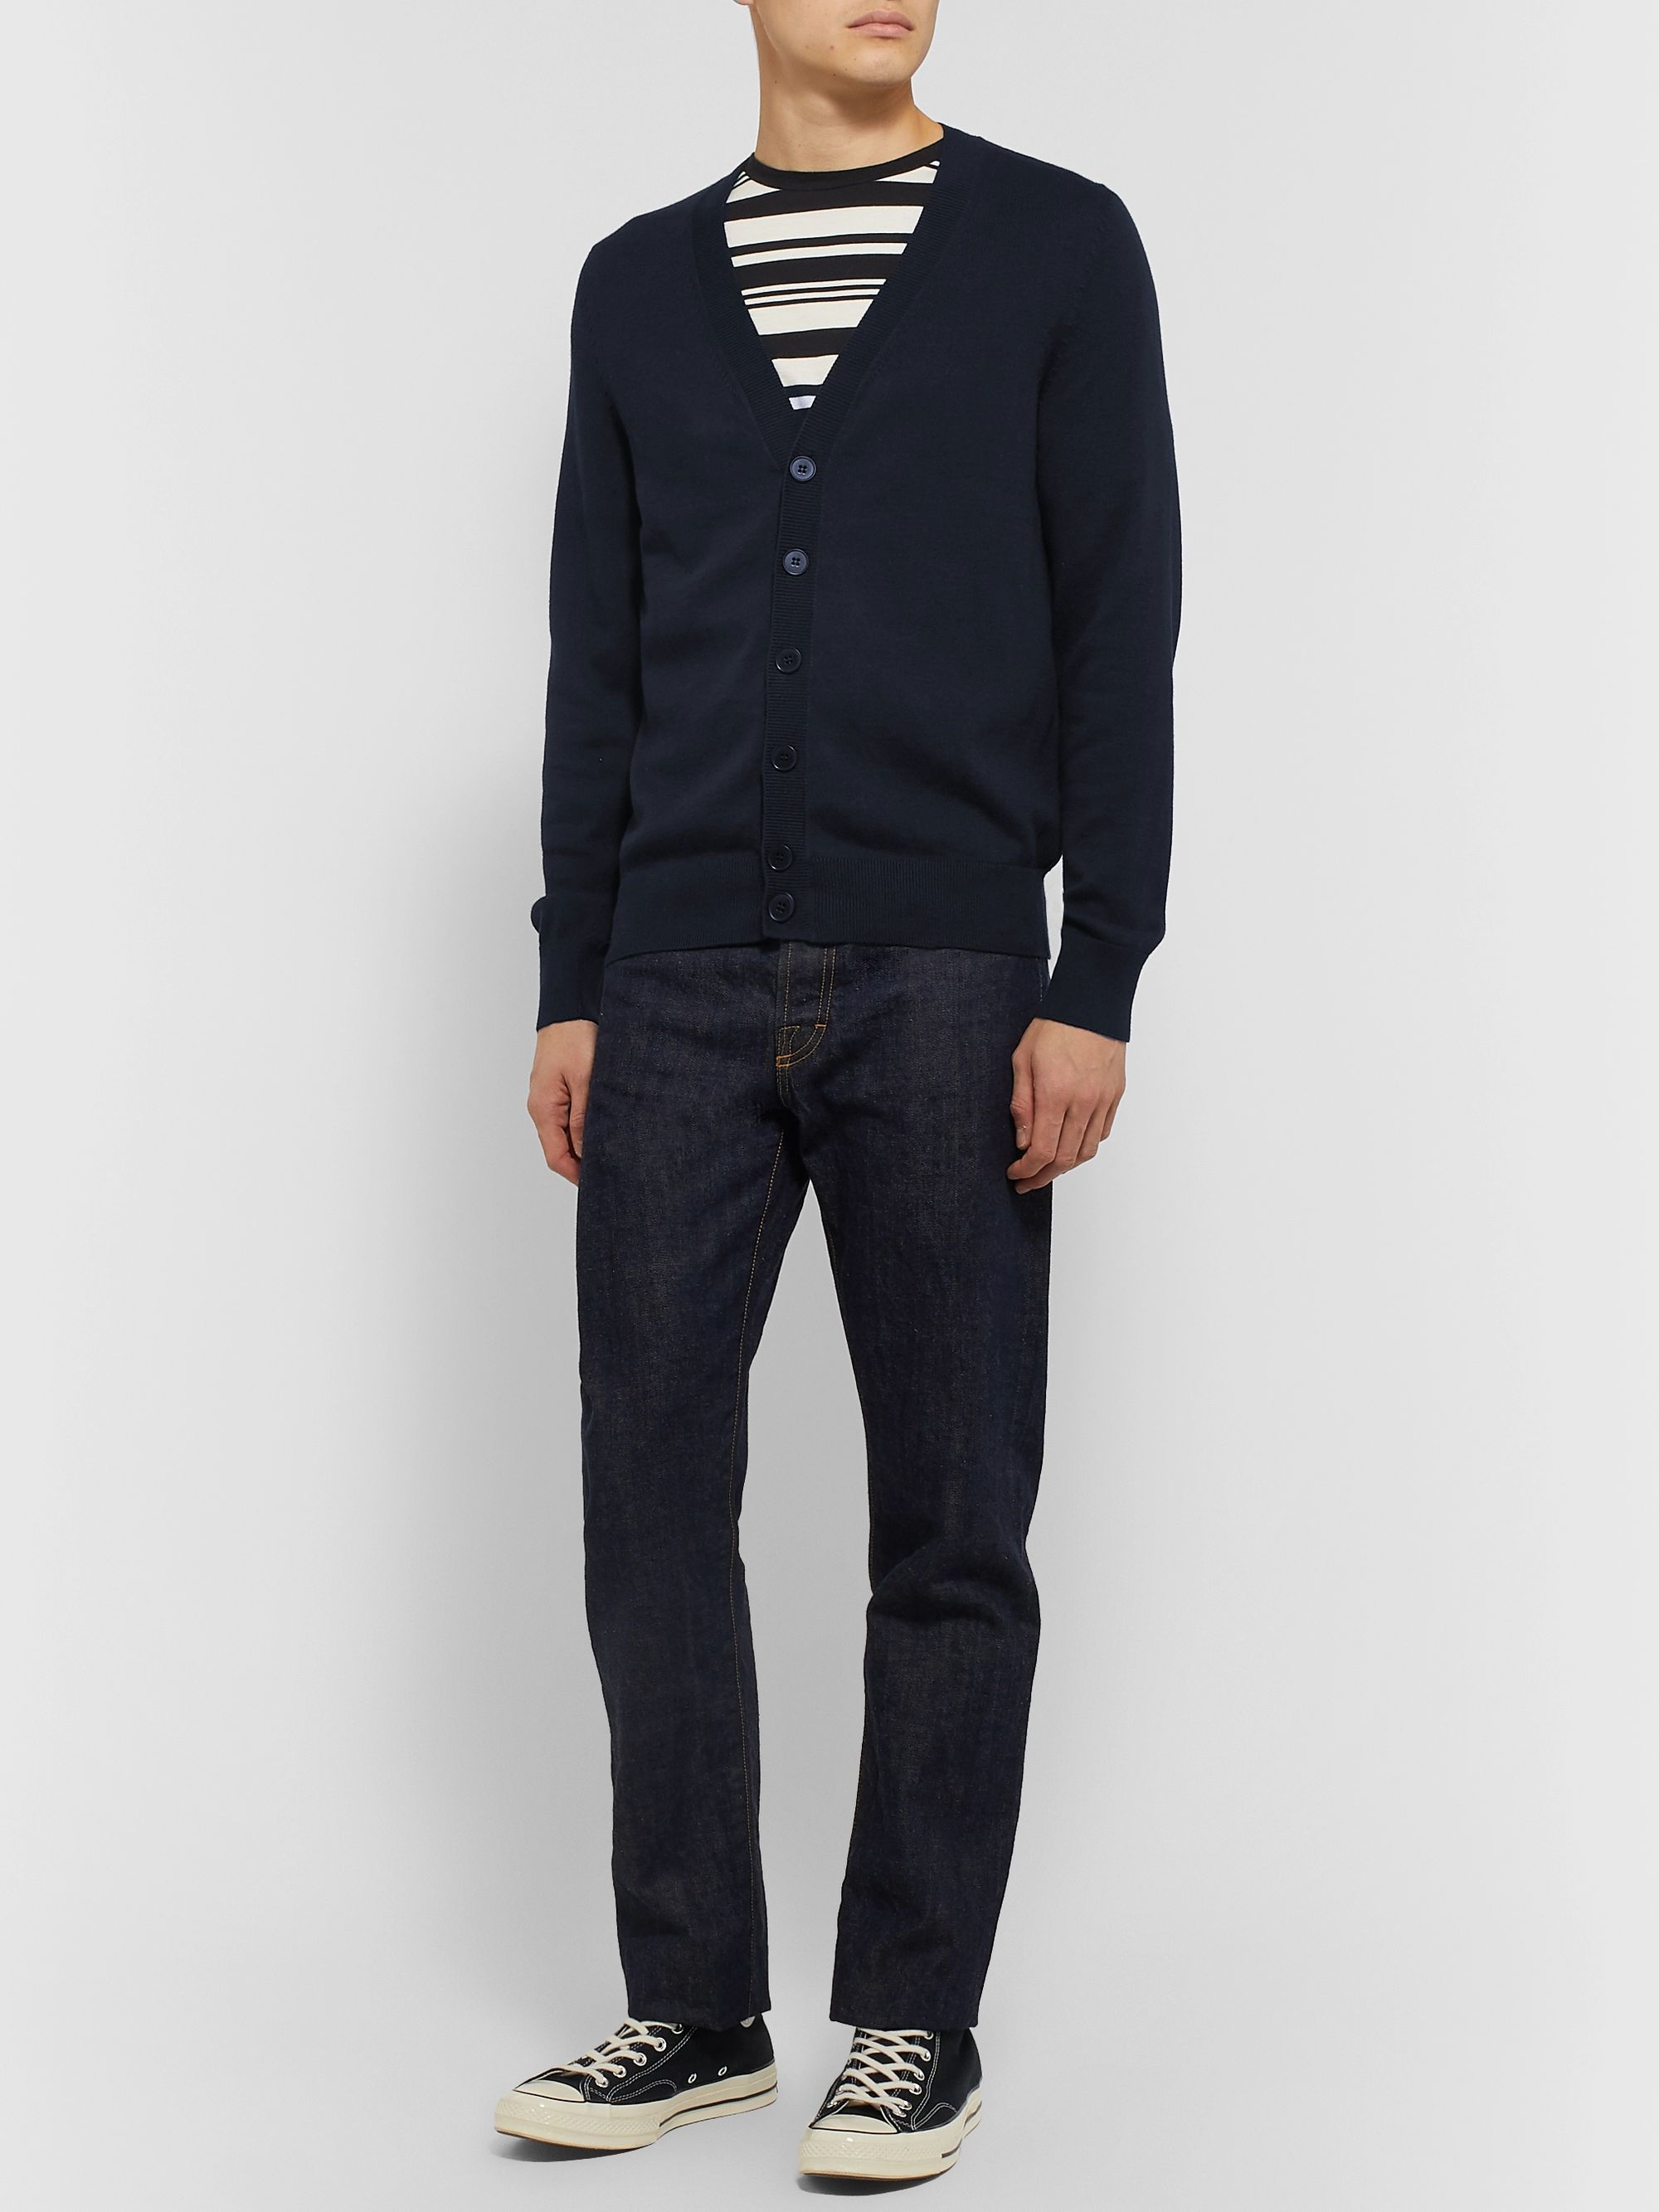 A.P.C. Joseph Cotton Cardigan